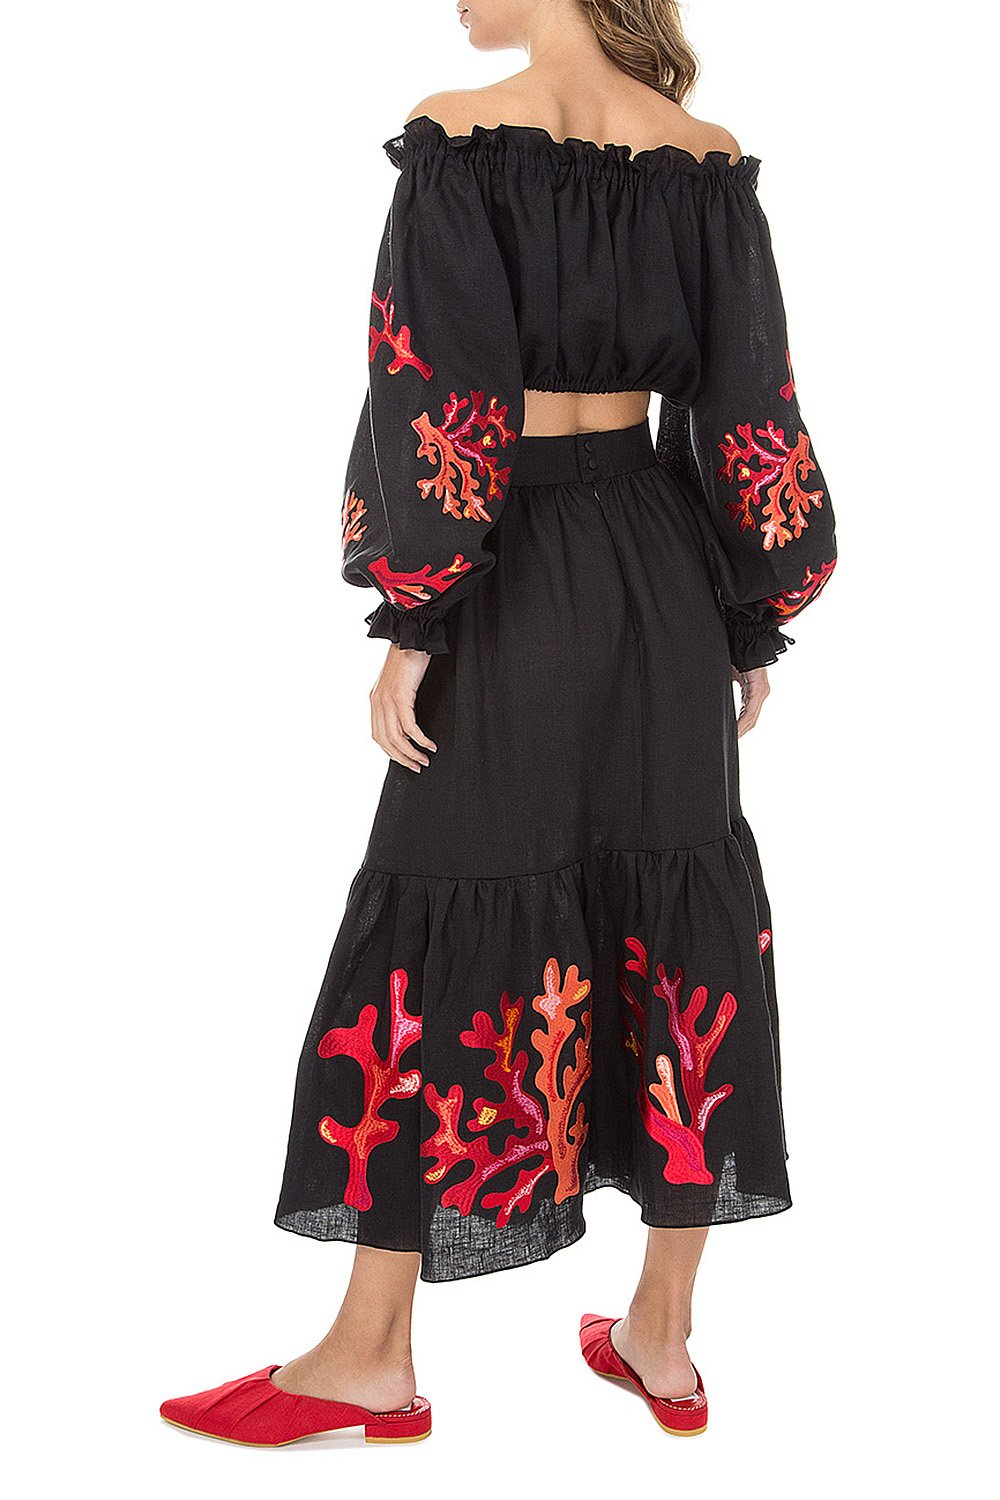 Bora Bora Black Midi Suit